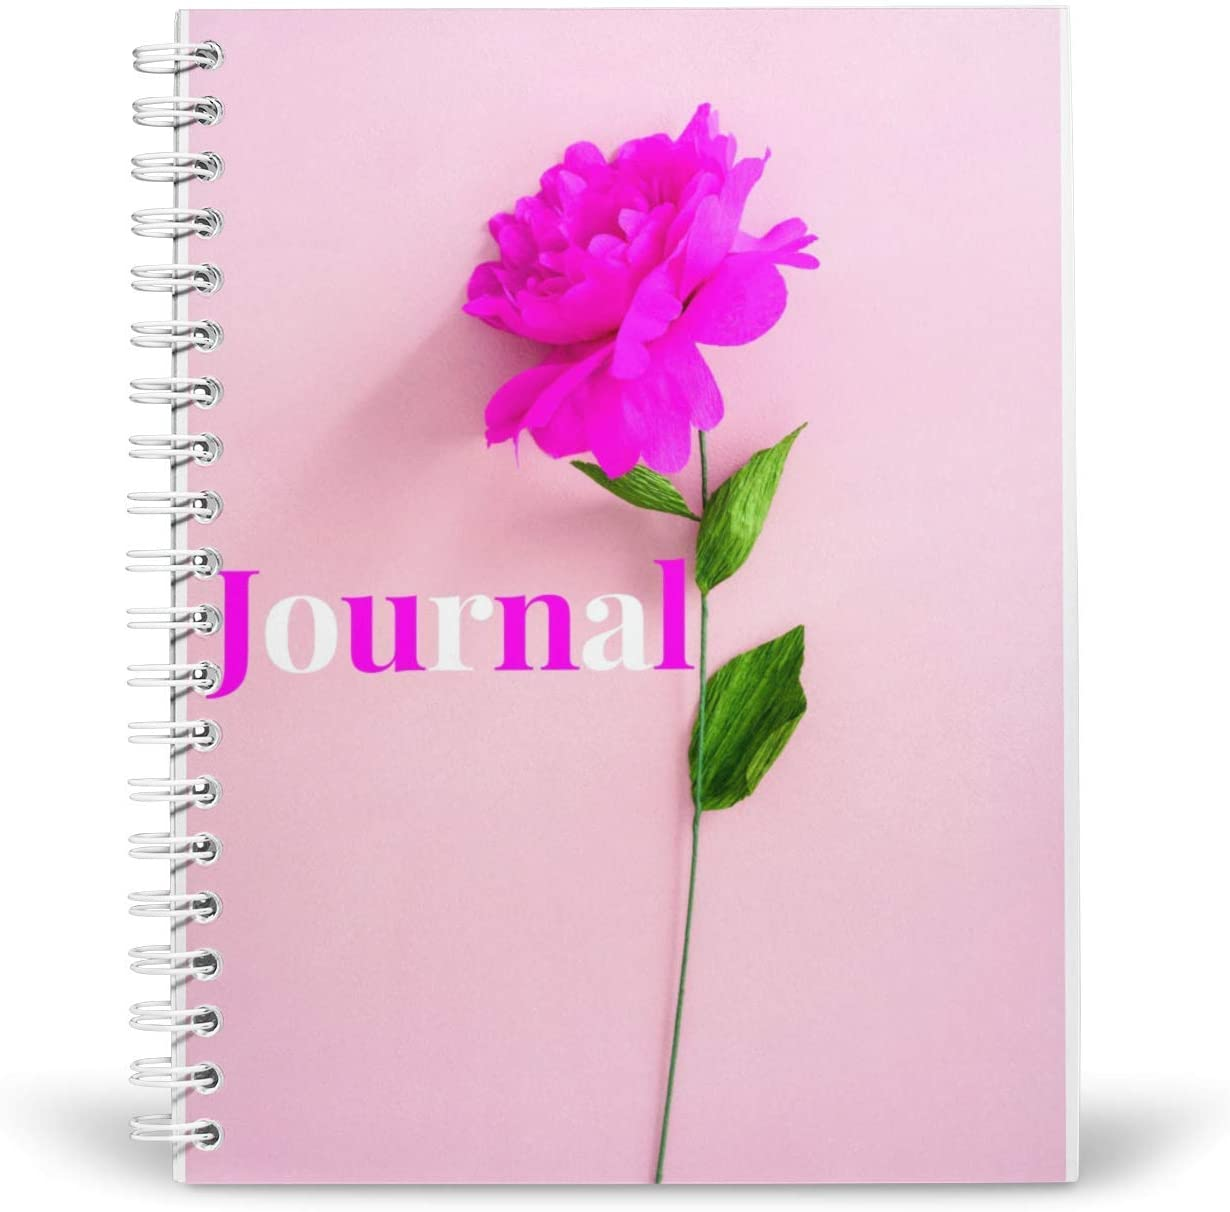 Pink Flower Journal/Notebook 5.5x8.5 Coil Bound 196 lined pages, spiral journal/notebook